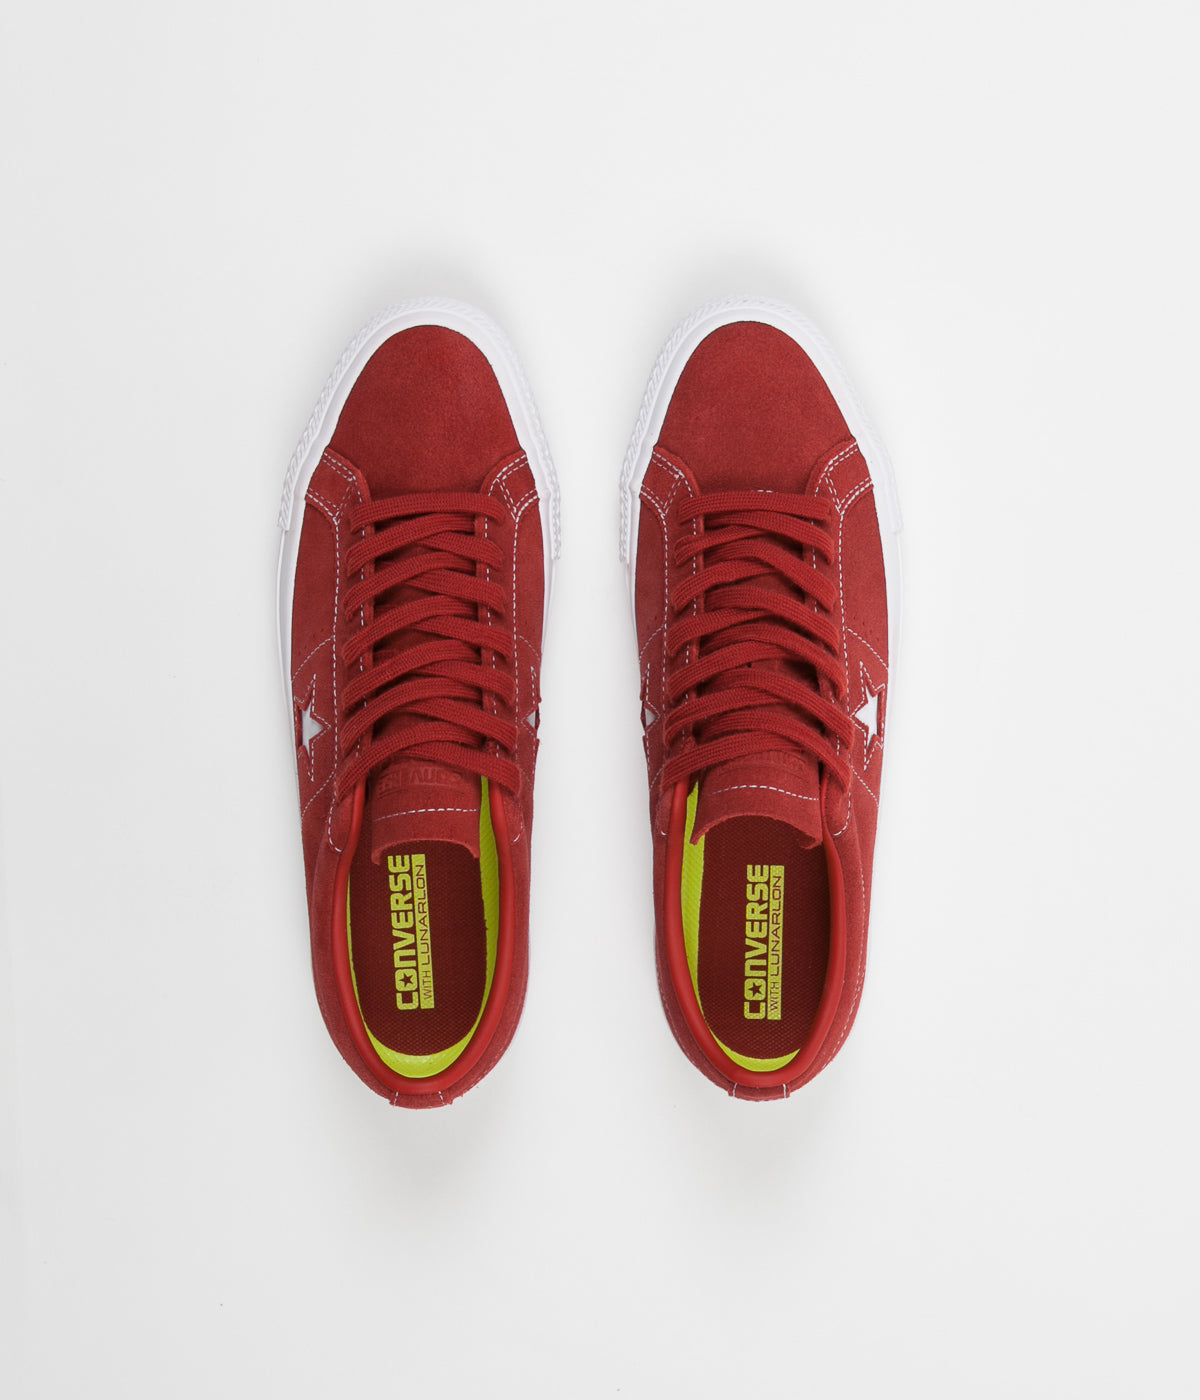 3dd45adf8bdb ... hot converse one star pro ox shoes terra red terra red 3c42b 3ed8c